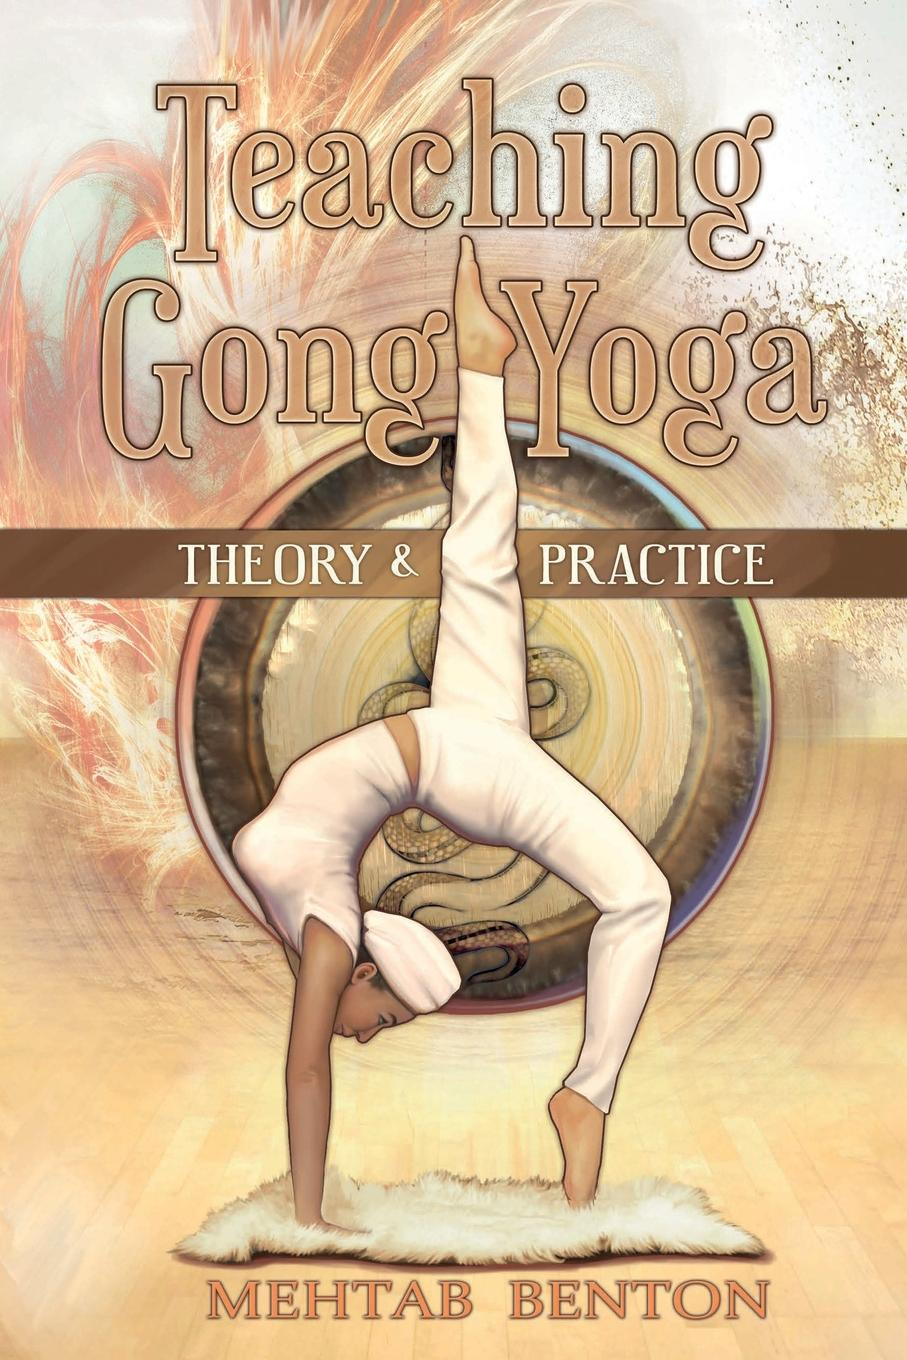 Mehtab Benton Teaching Gong Yoga michael o'neill on yoga the architecture of peace